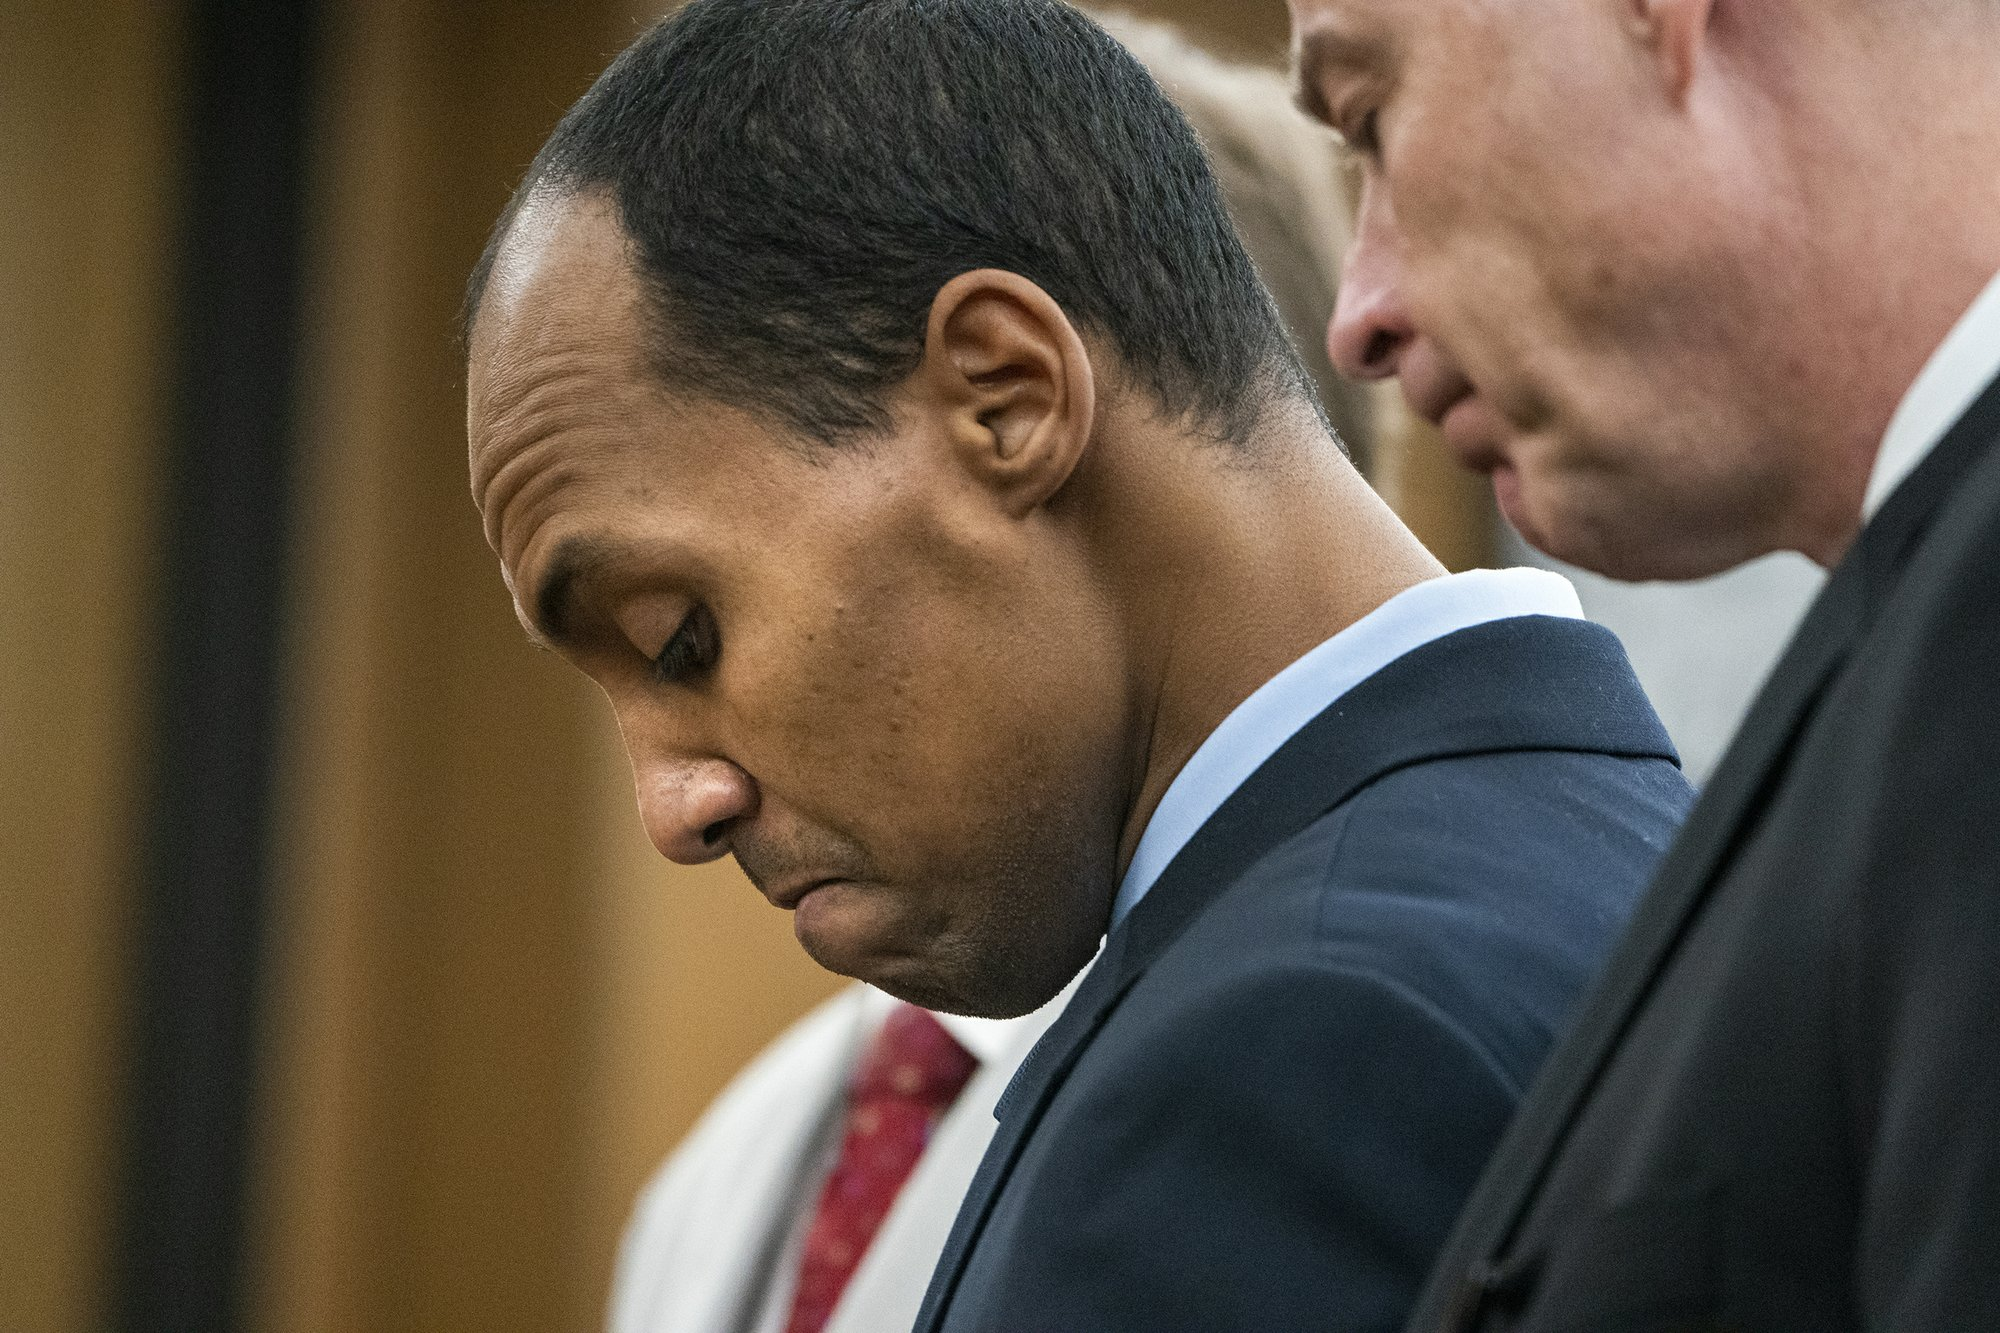 'I was wrong': Officer who shot 911 caller gets 12½ years